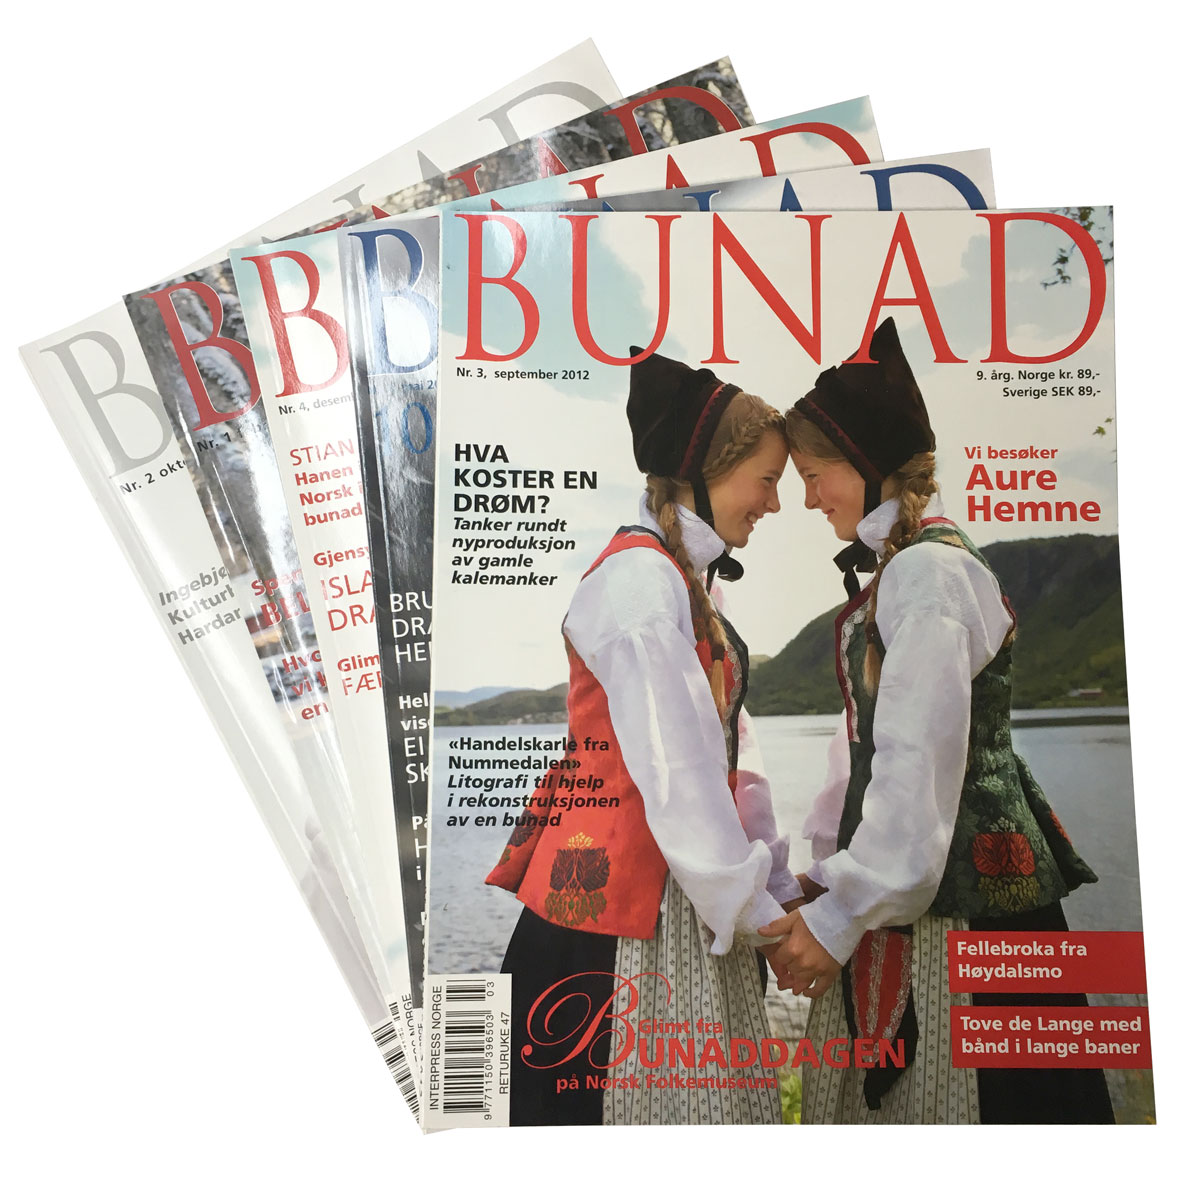 Abonnement + Buskerud-bundle